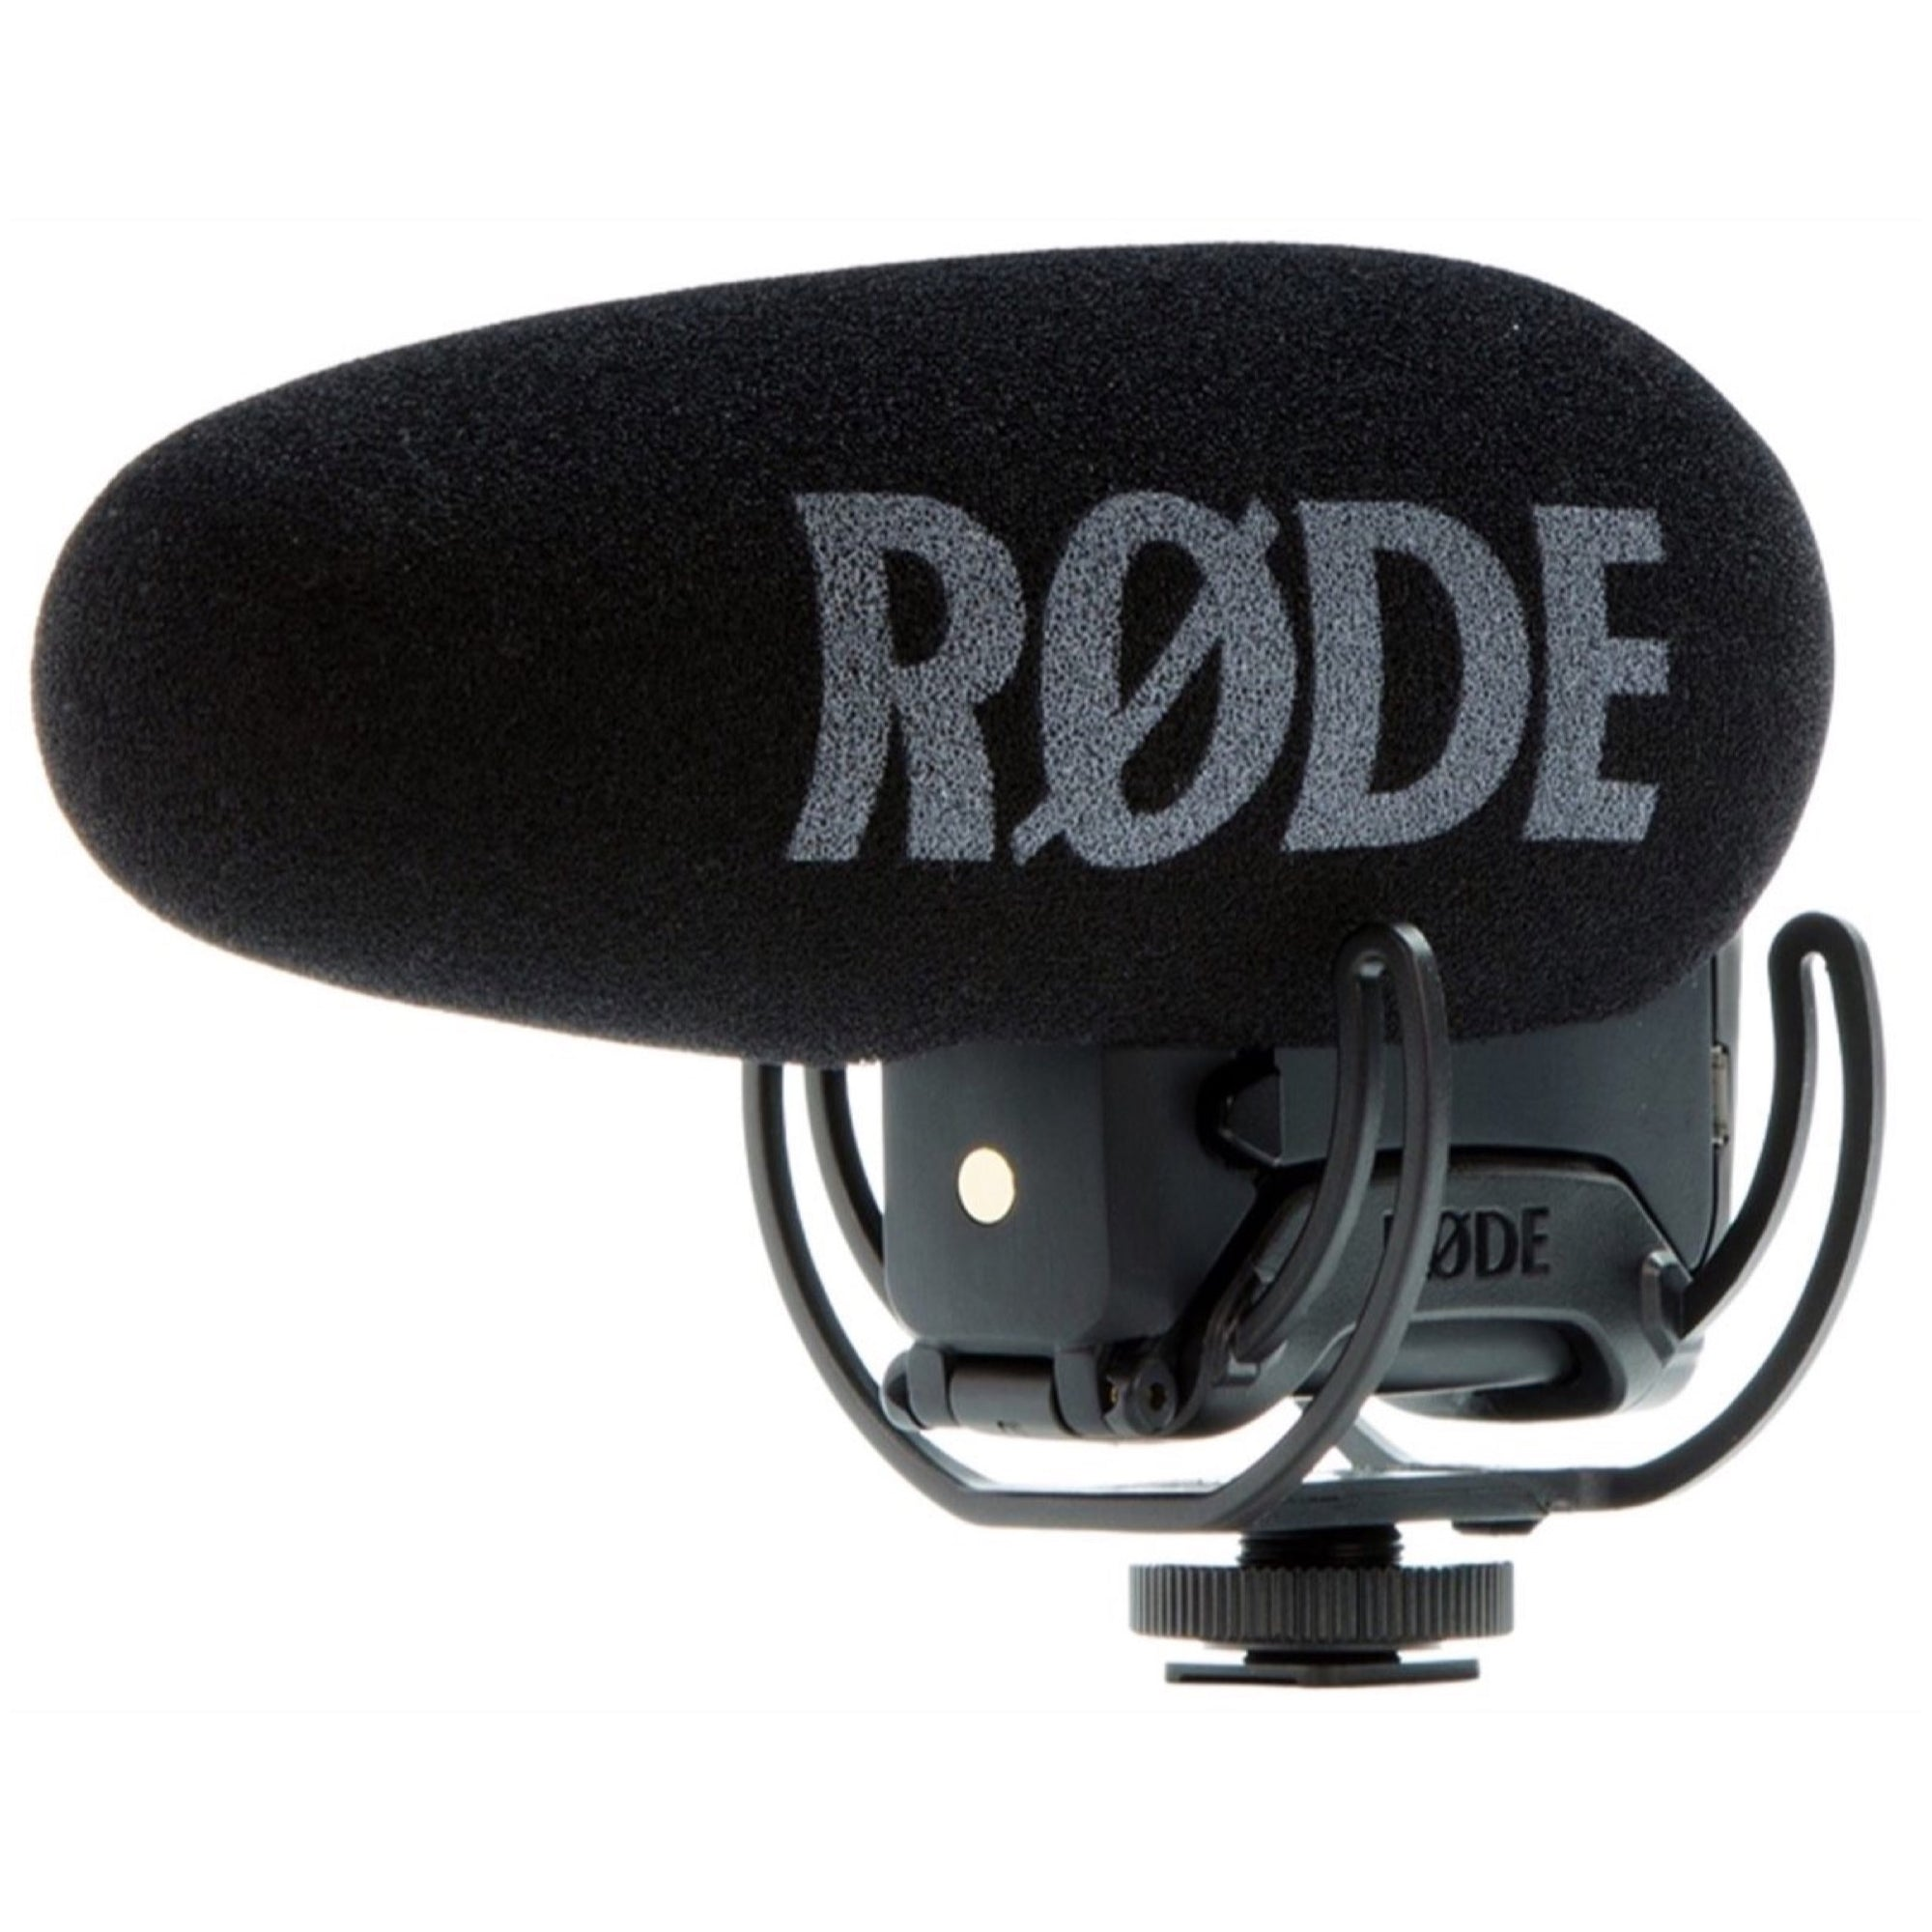 Rode VideoMic Pro Plus Compact Directional On-Camera Microphone